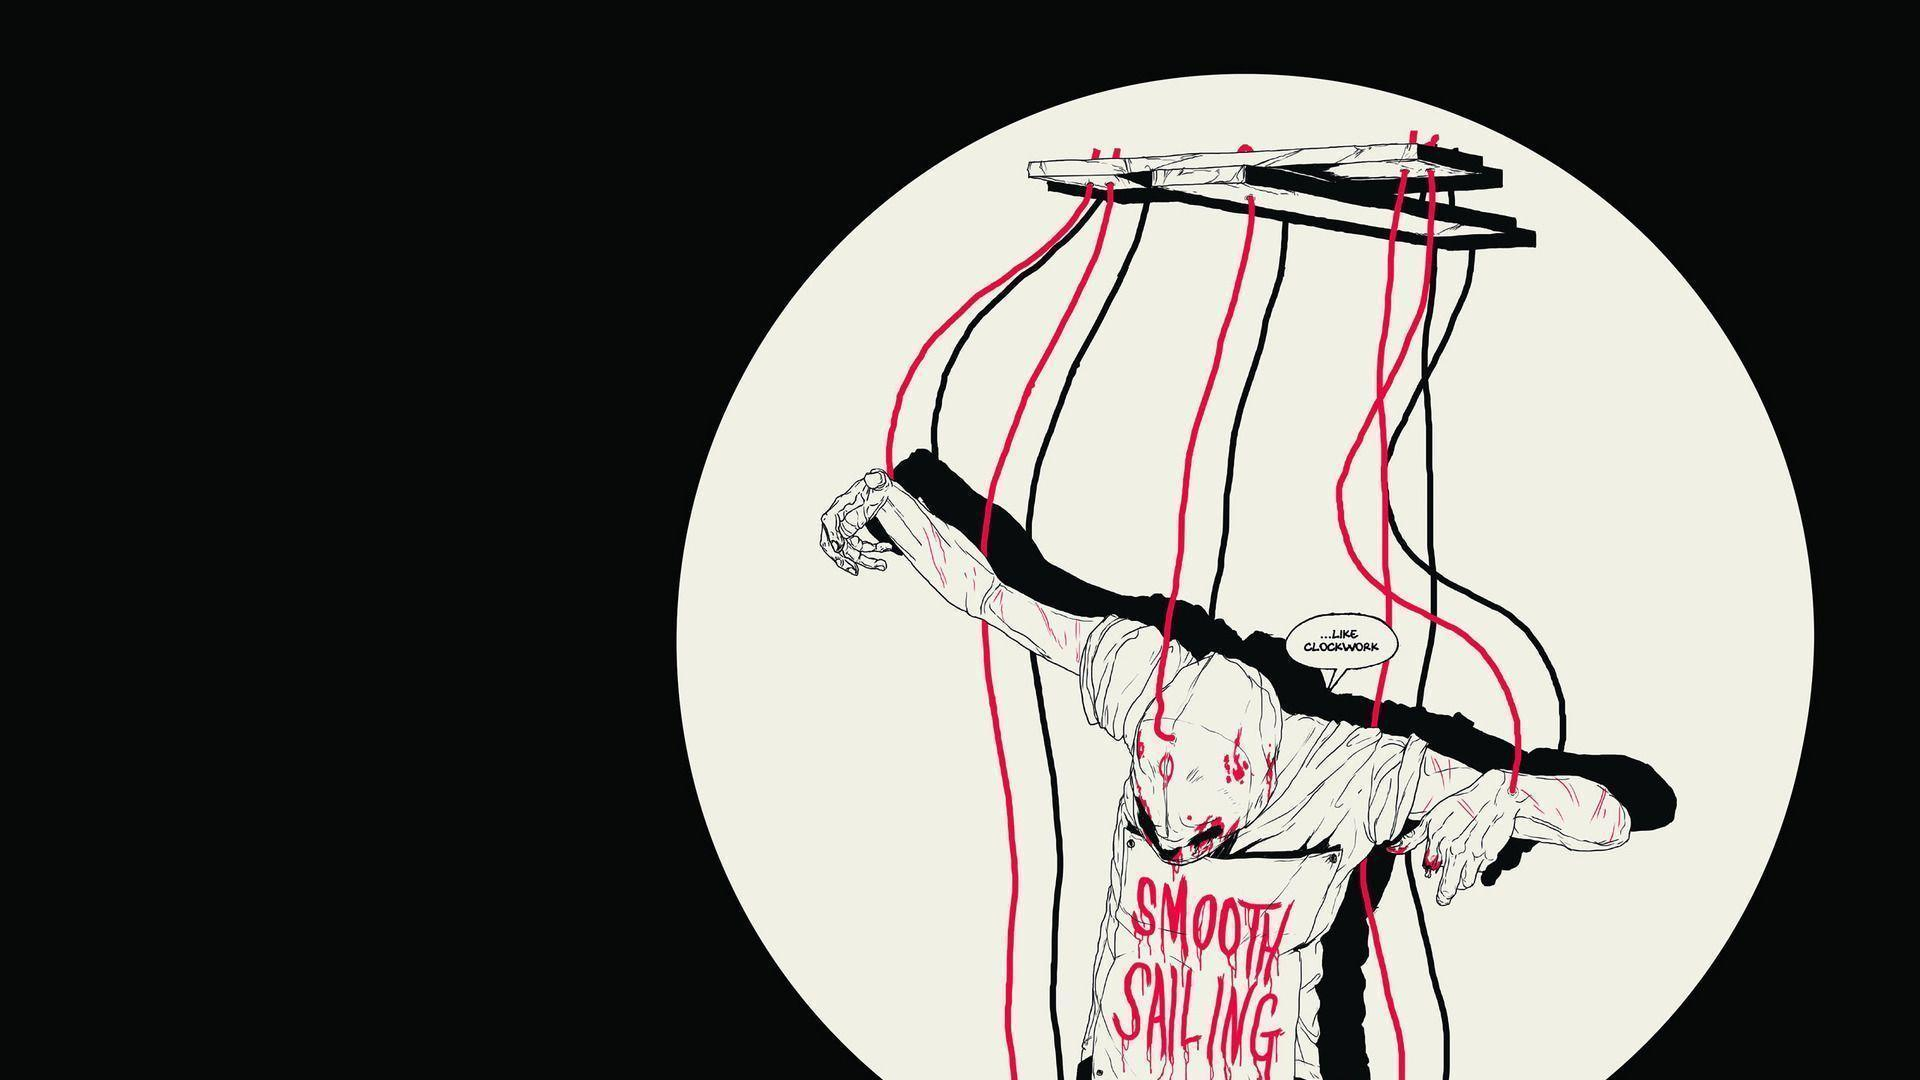 Queens Of The Stone Age Wallpapers - Wallpaper Cave Queens Of The Stone Age Like Clockwork Wallpaper